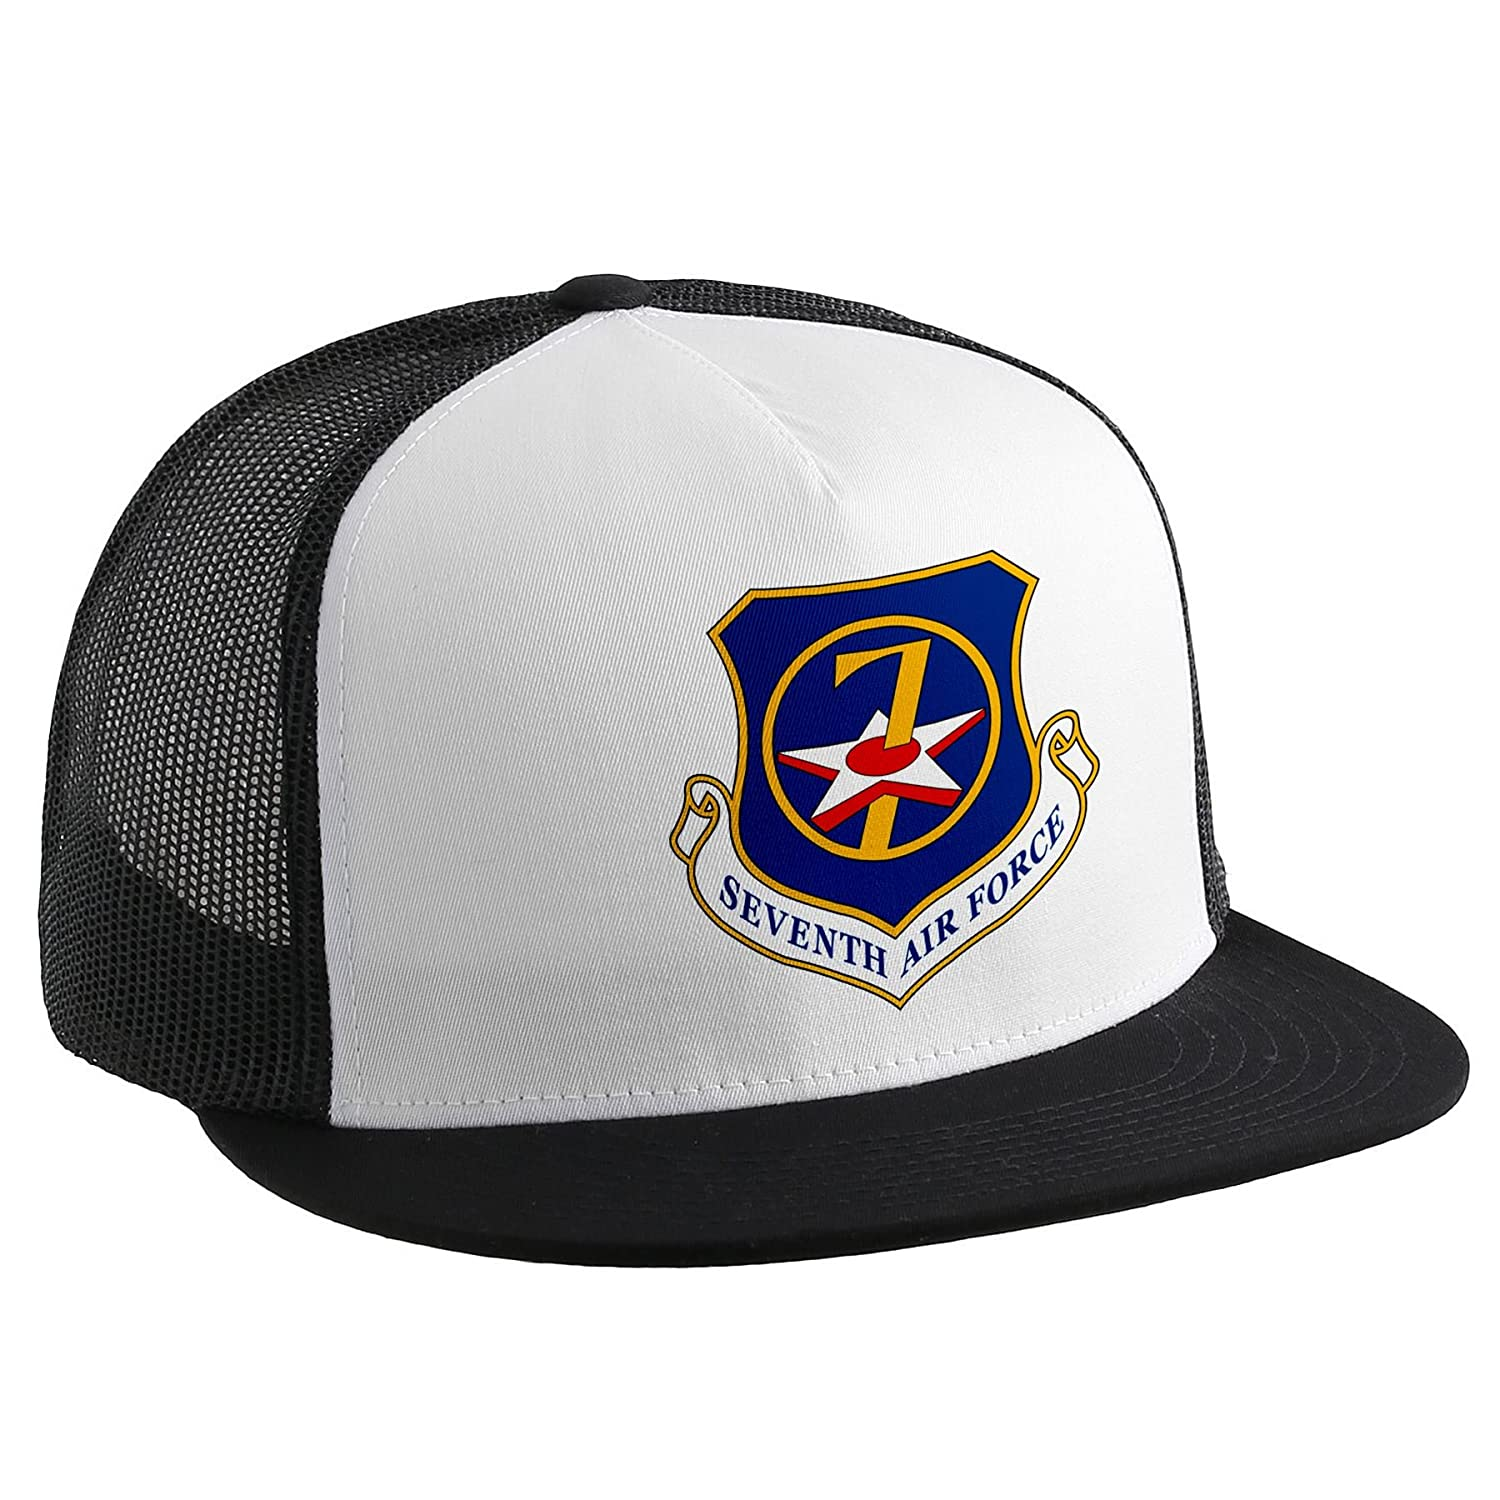 Trucker Hat with u.s. 7th Air Force、エンブレム   B00V1LTEGS